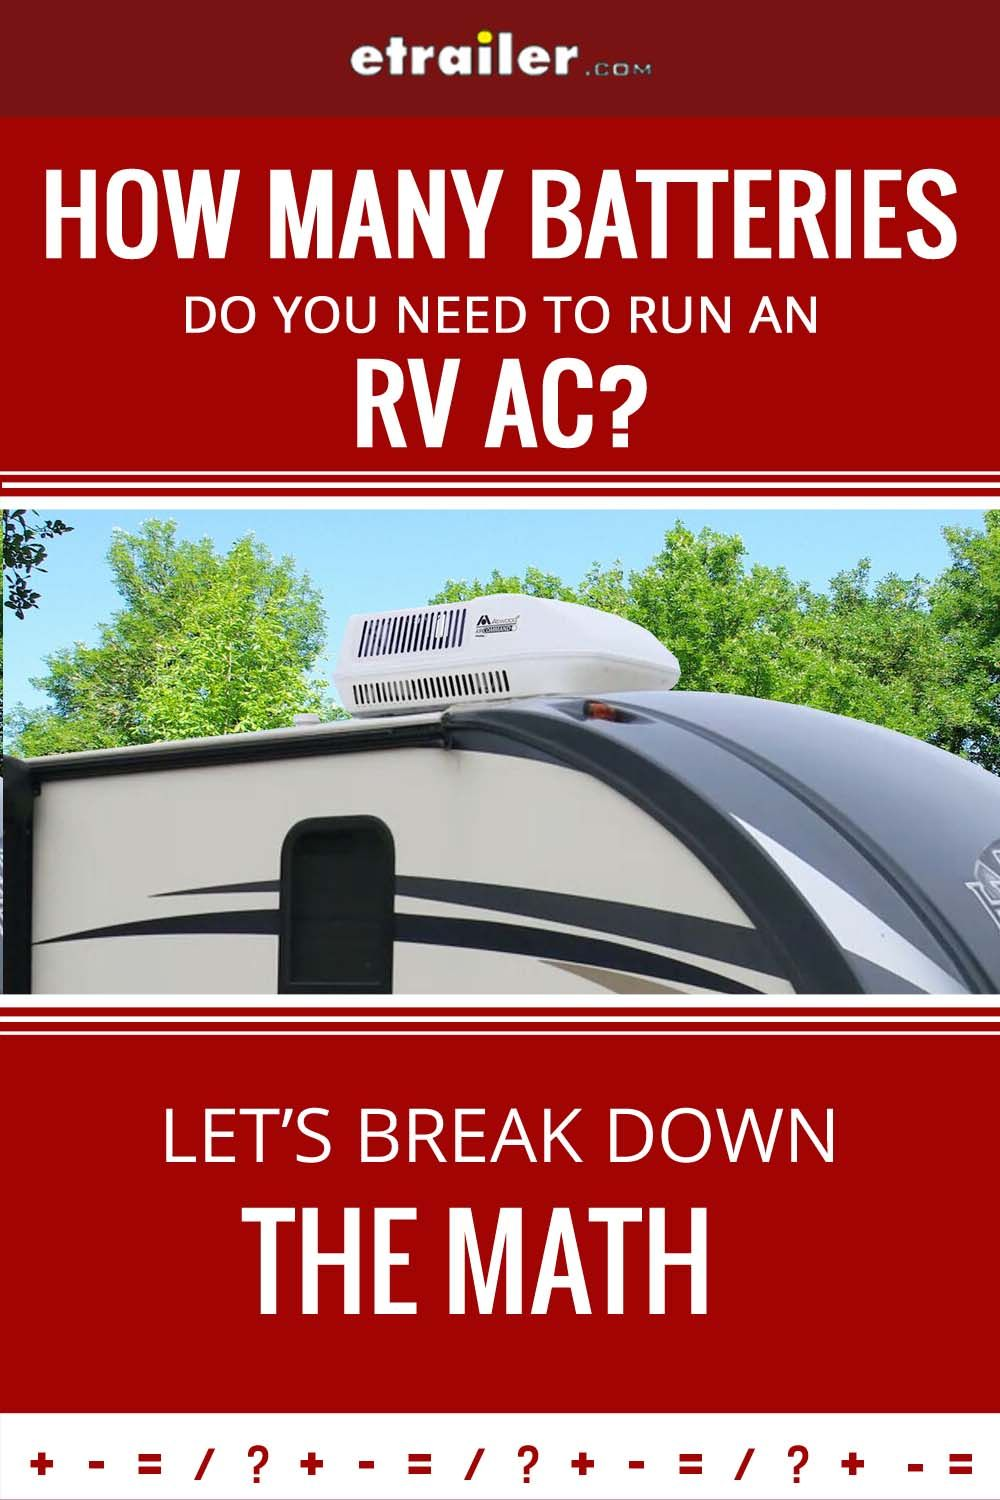 No one likes their RV to feel like a sauna, but running